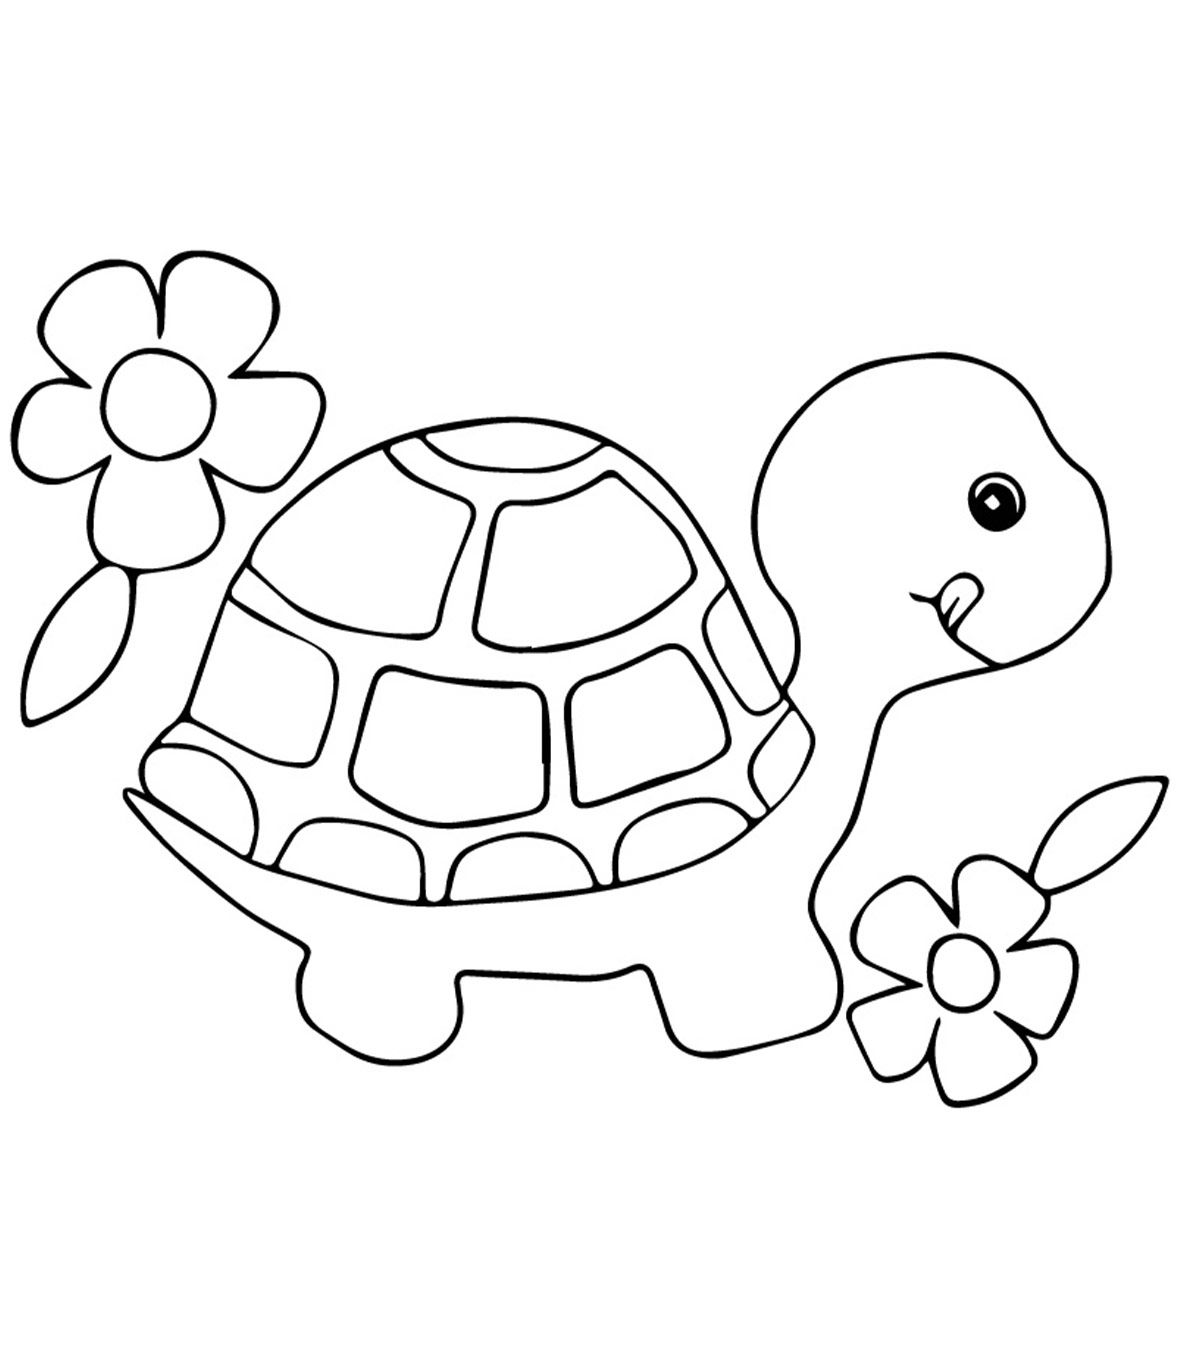 Top 20 Free Printable Turtle Coloring Pages Online Turtle Coloring Pages Cute Coloring Pages Coloring Pages For Kids